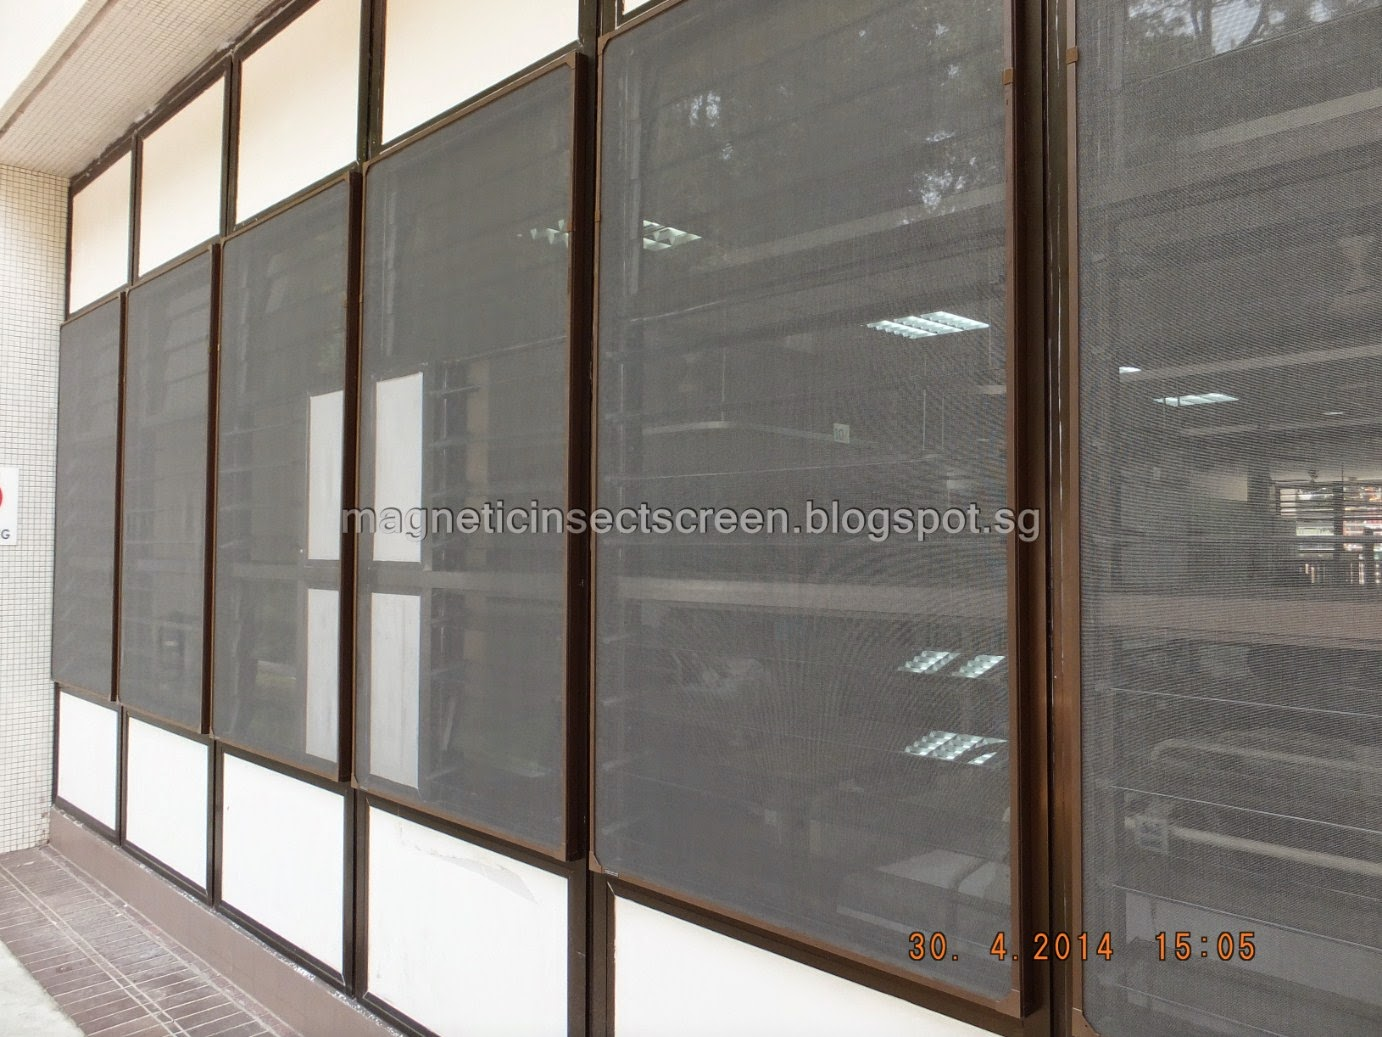 Diy magnetic insect screen singapore installation on 30 for Window insect screen